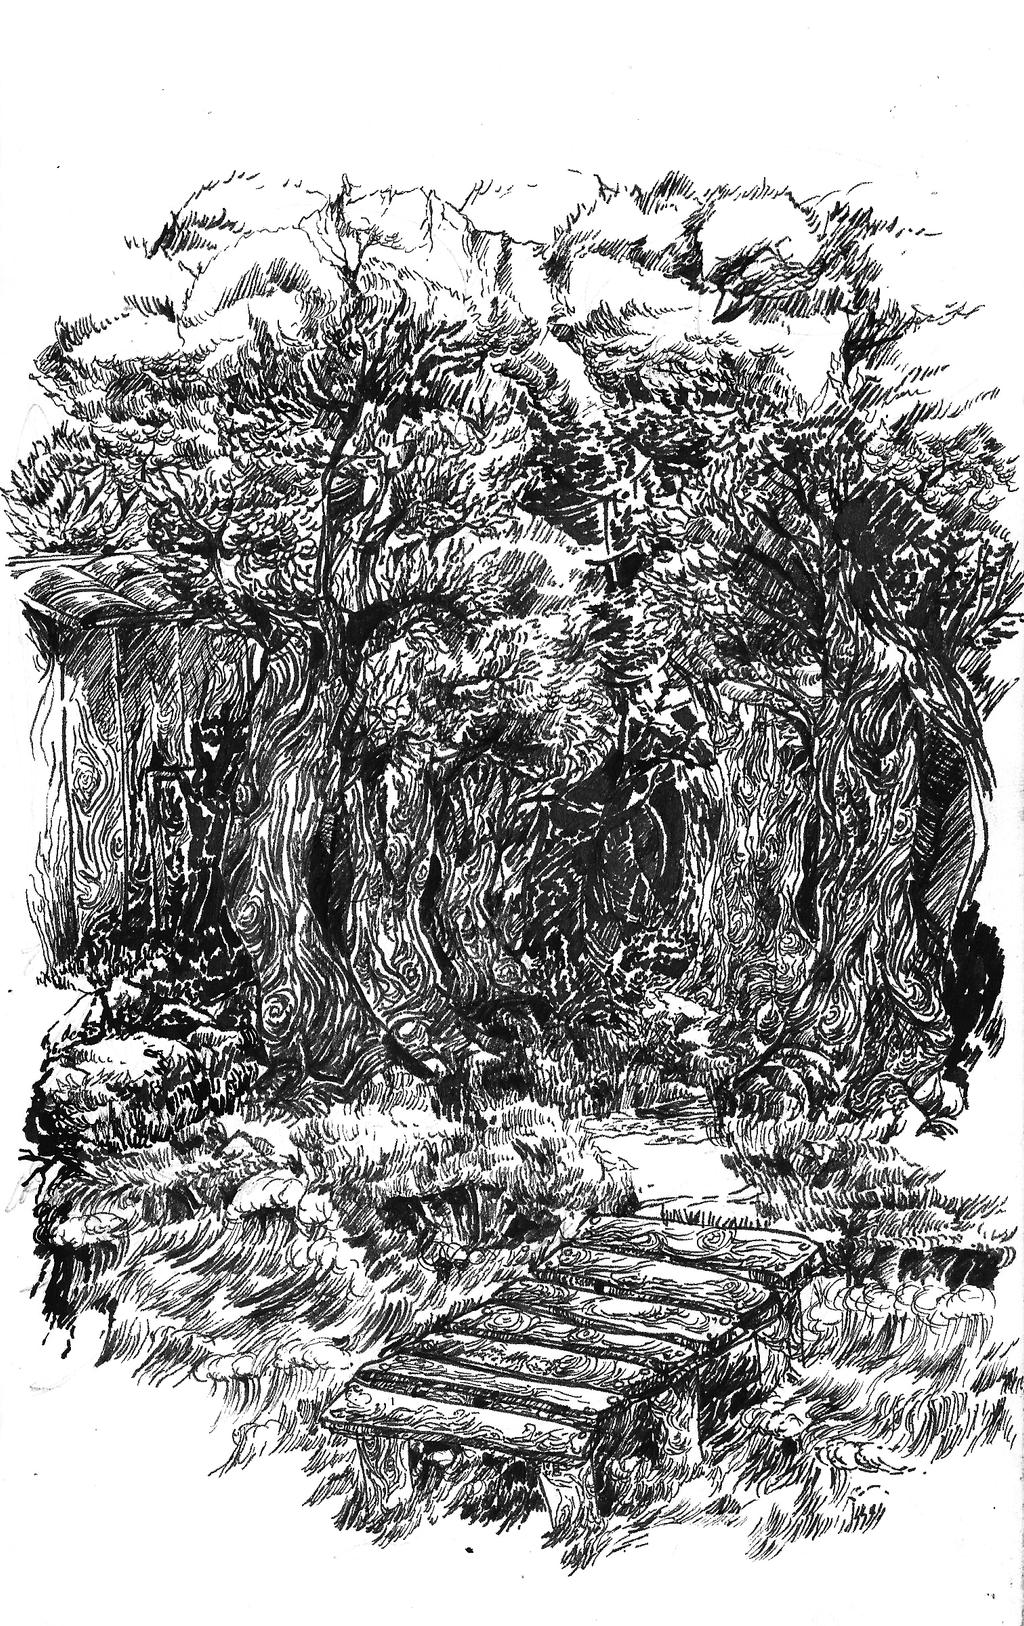 Drab forest scene by timberking on deviantart for Forest scene drawing